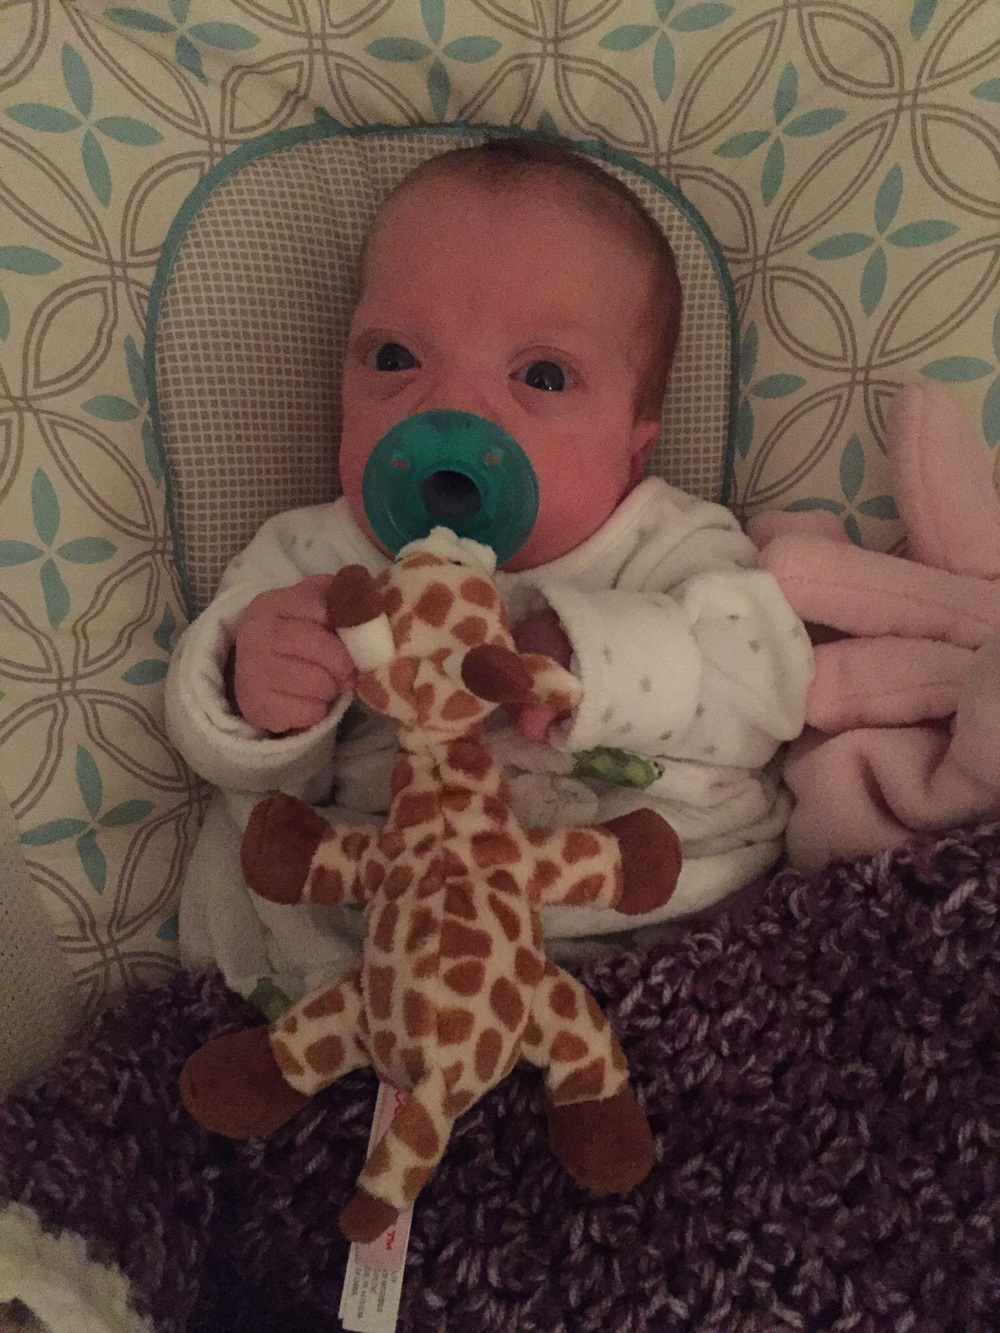 Snuggle time with her giraffe